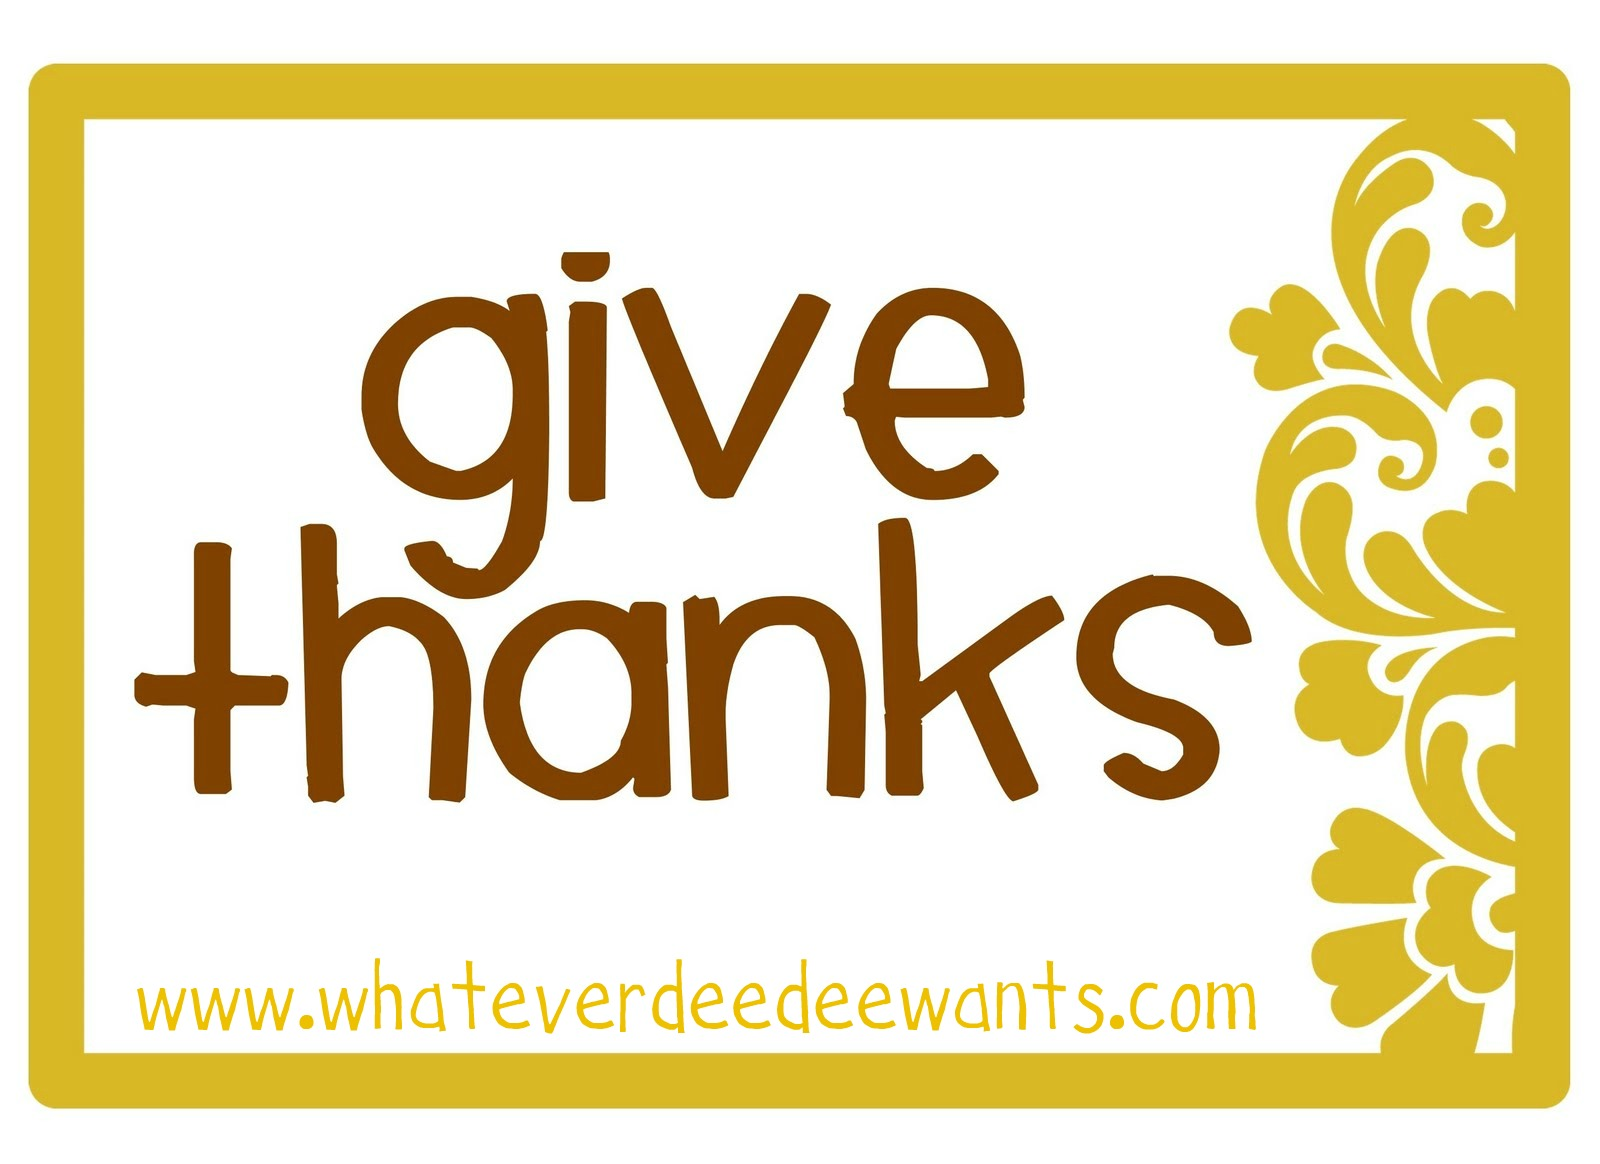 photo about Give Thanks Printable referred to as Regardless of what Dee-Dee desires, shes gonna just take it: Deliver Because of